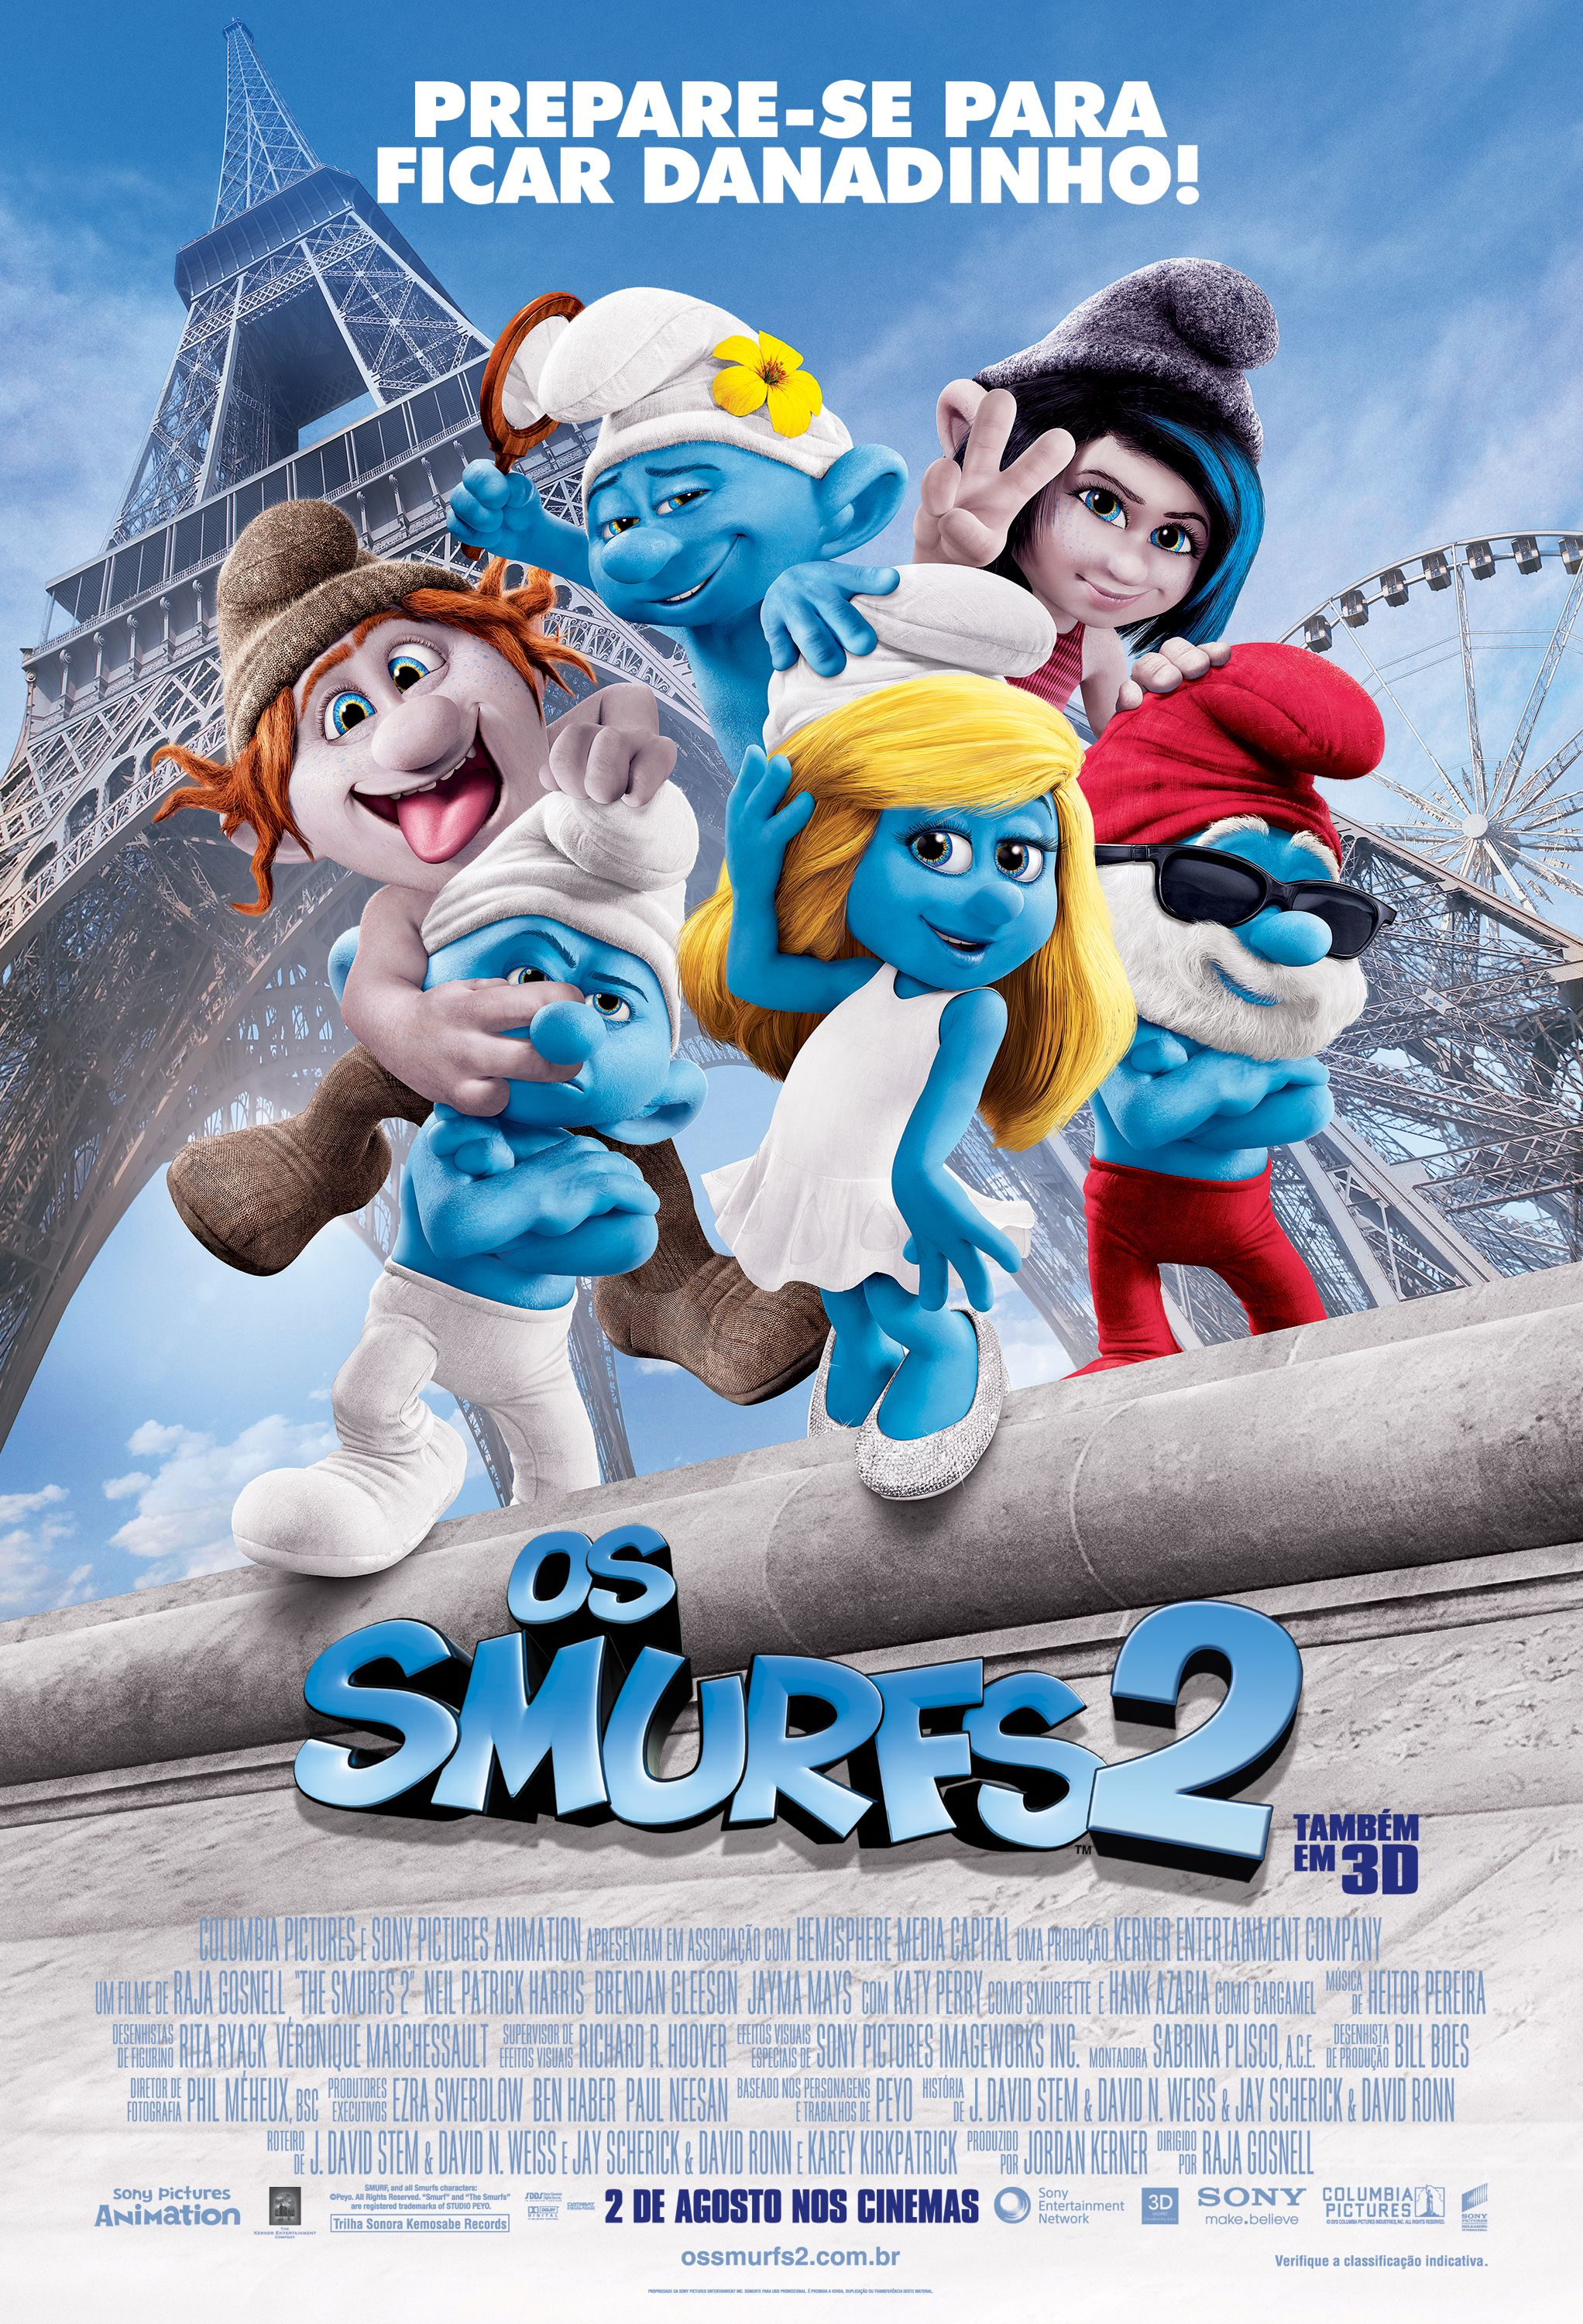 Os Smurfs 2 Estreia Dia 02 De Agosto Trailer Http Youtu Be 2mpikrwla5u The Smurfs 2 Kid Movies Smurfs